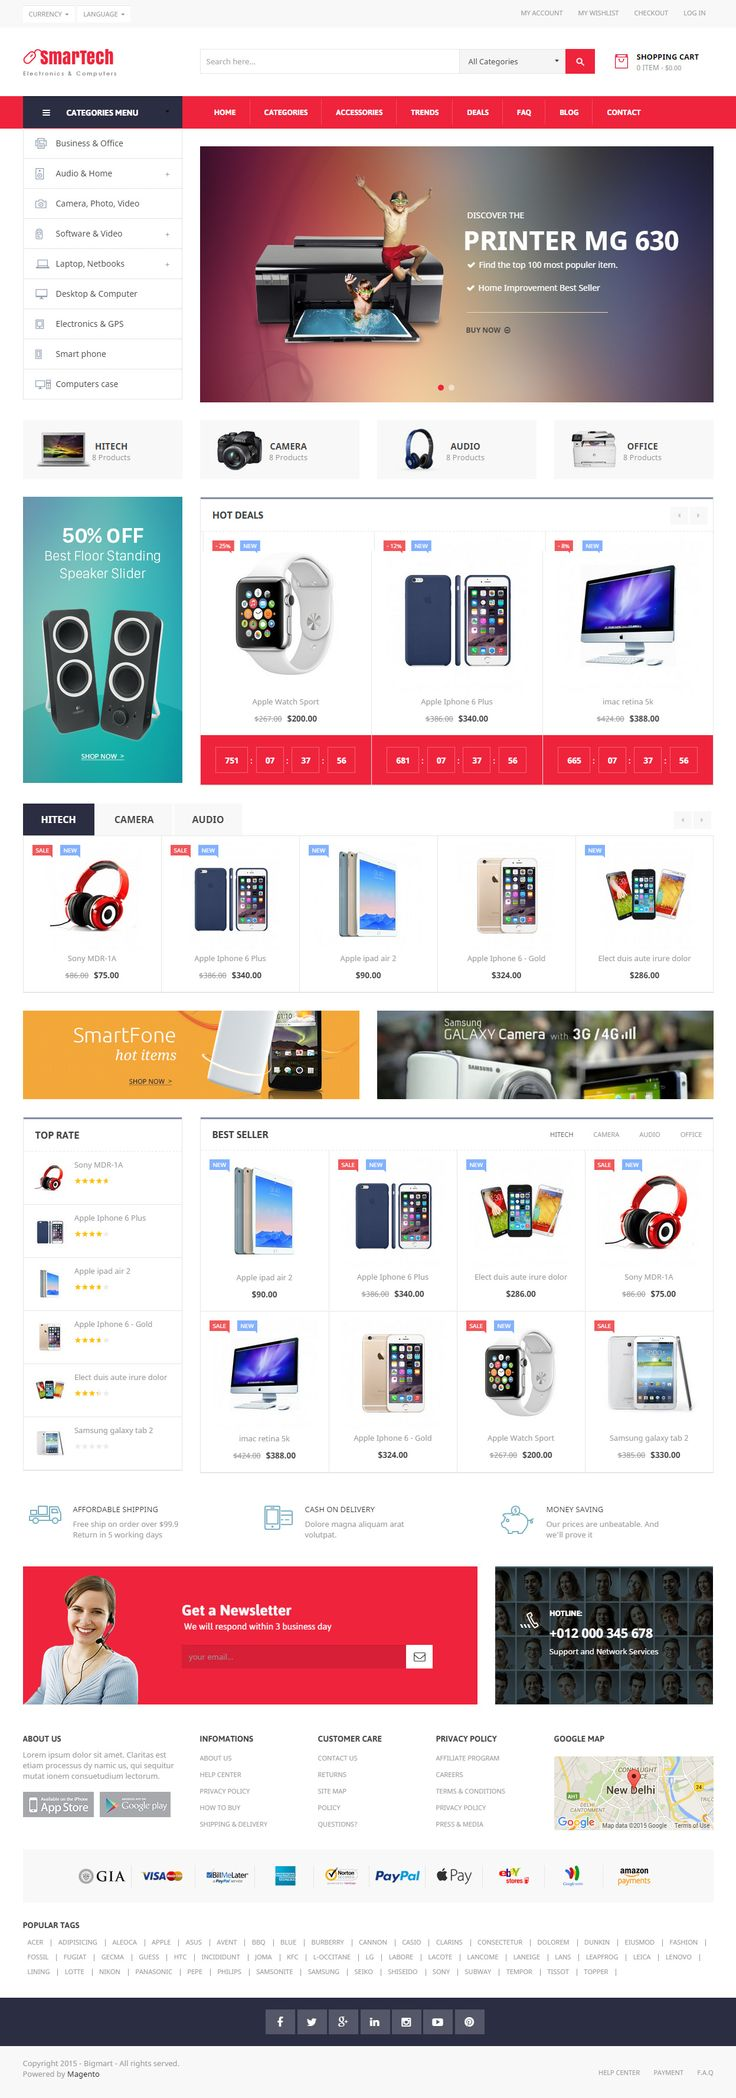 Bigmart is Premium full Responsive #Magento #eCommerce Theme. #Bootstrap3Framework. Drag and Drop Page Builder. Google Fonts. Test free demo at: http://www.responsivemiracle.com/cms/bigmart-premium-responsive-pages-builder-magento-theme/